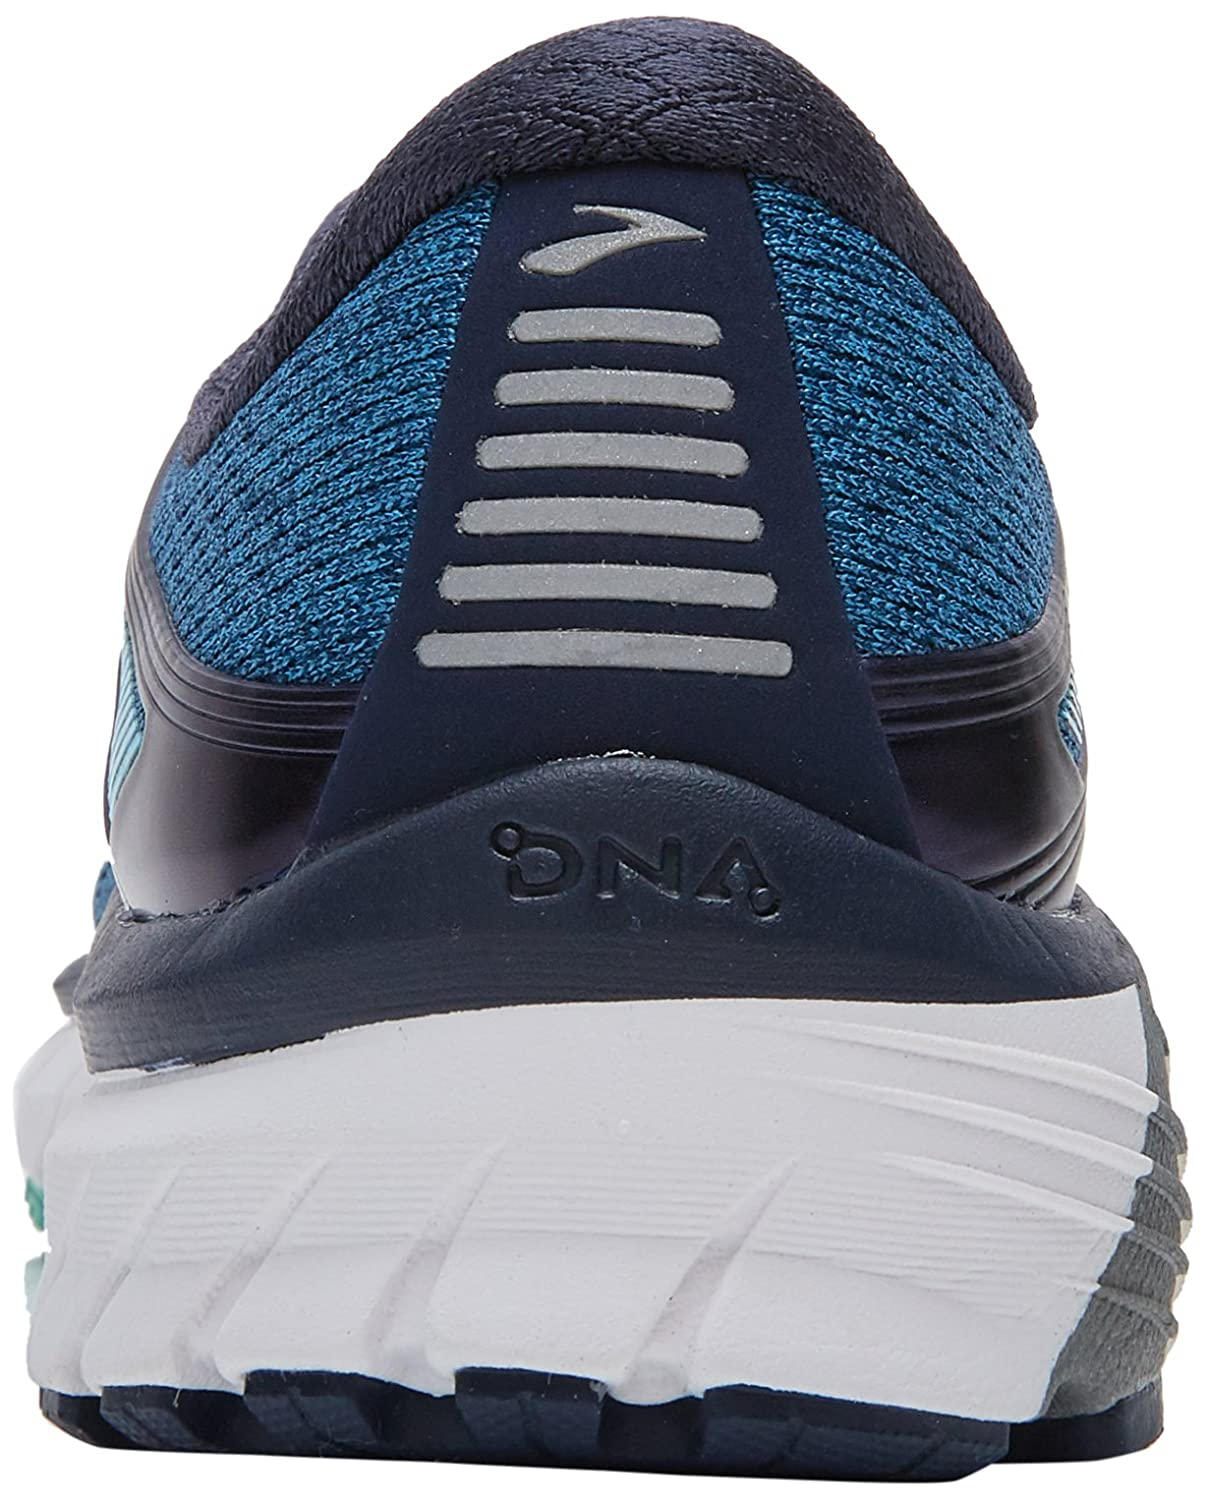 Brooks Womens Adrenaline GTS 18 B071NSPDZY 7.5 EE US|Navy/Teal/Mint